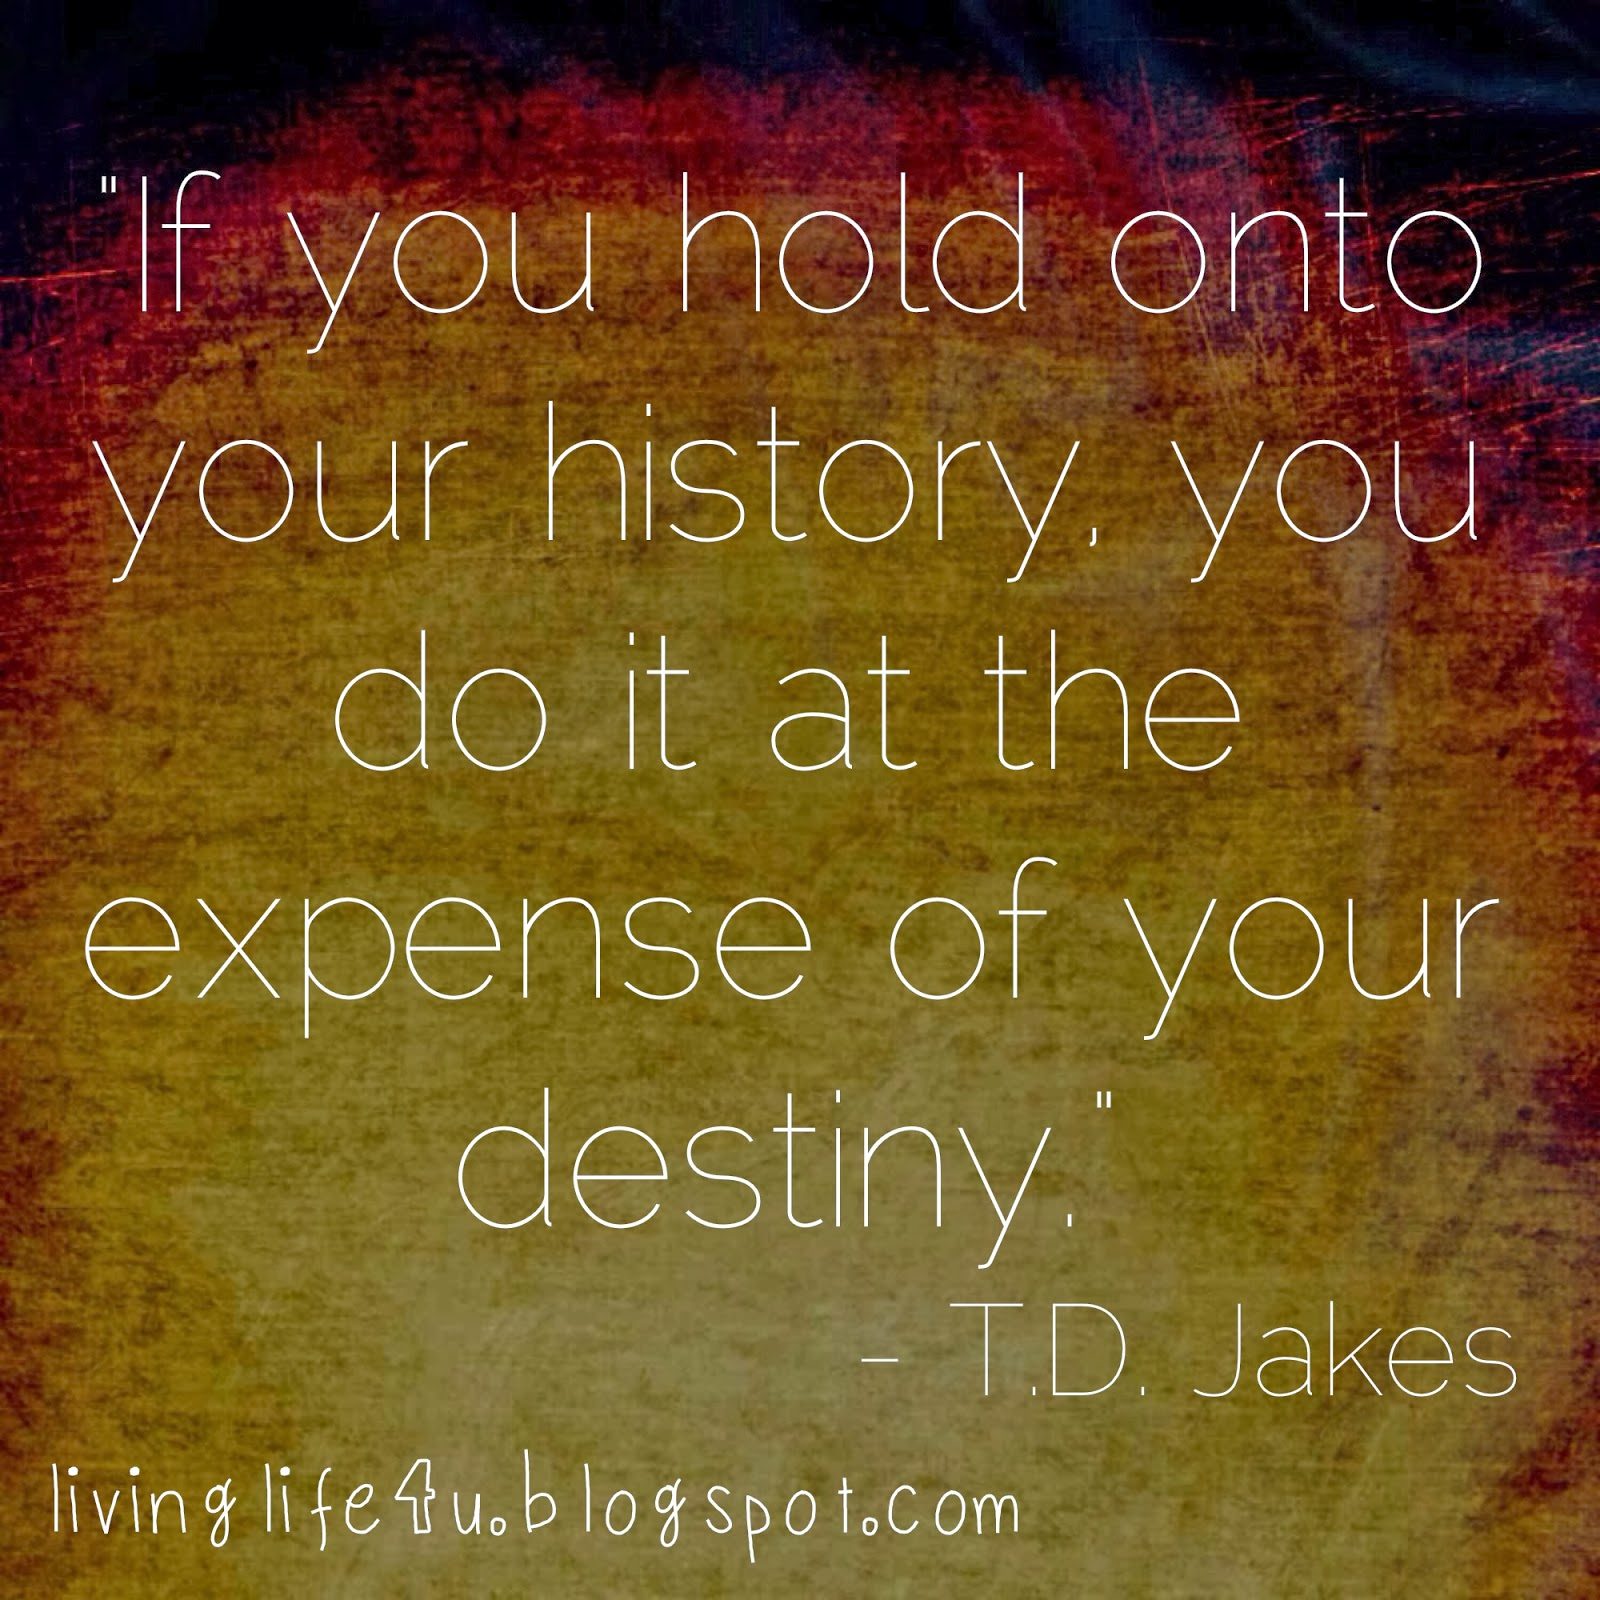 Quotes To Live Your Life By Live Your Life If You Hold Onto Your History.